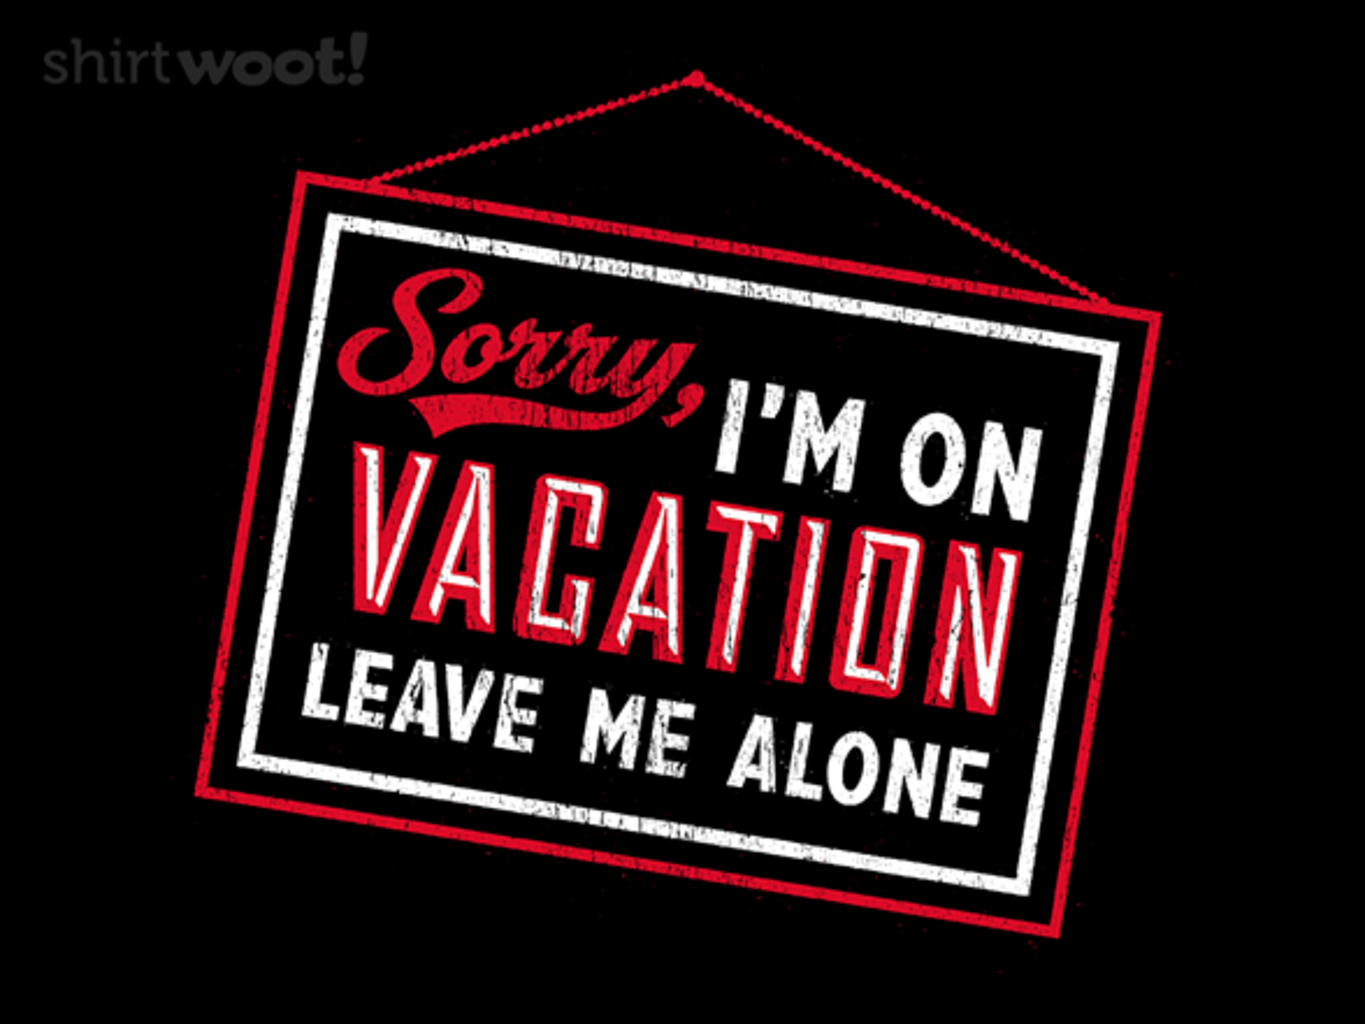 Woot!: Sorry, I'm On Vacation